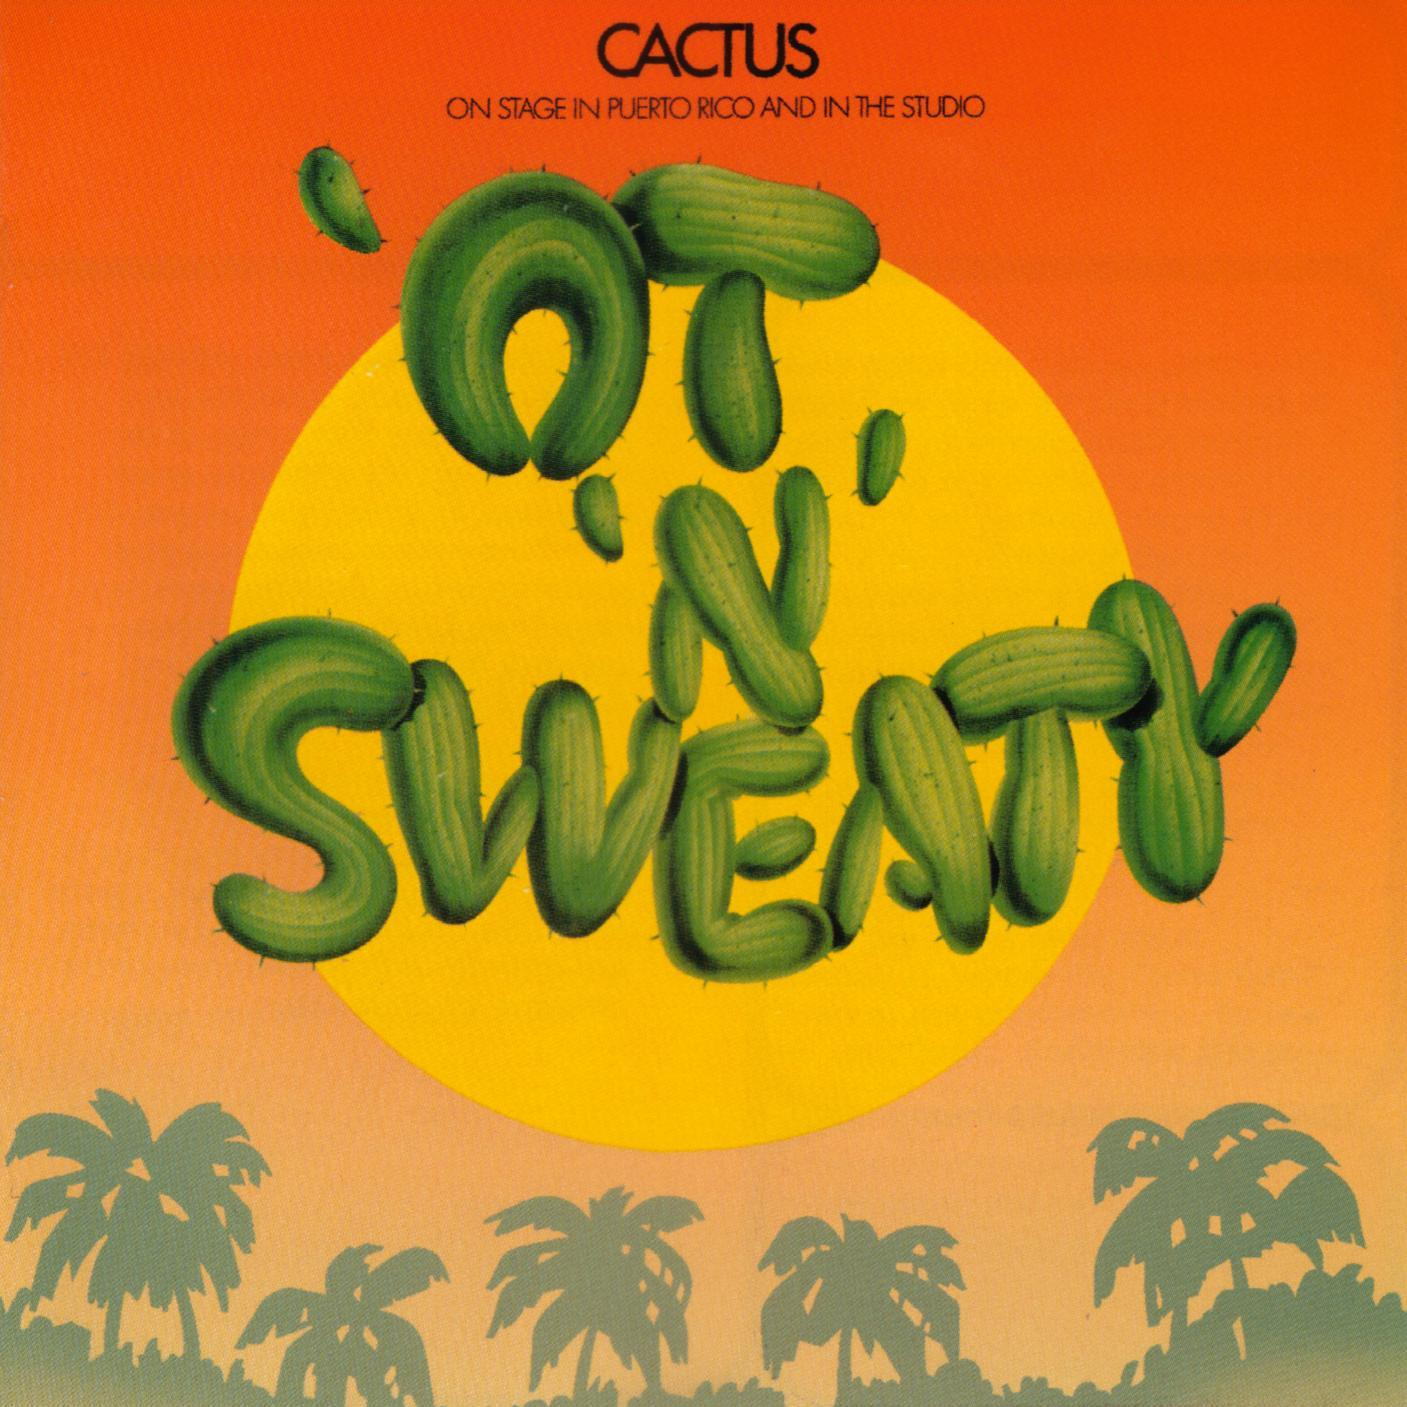 'Ot 'N' Sweaty Book Cover